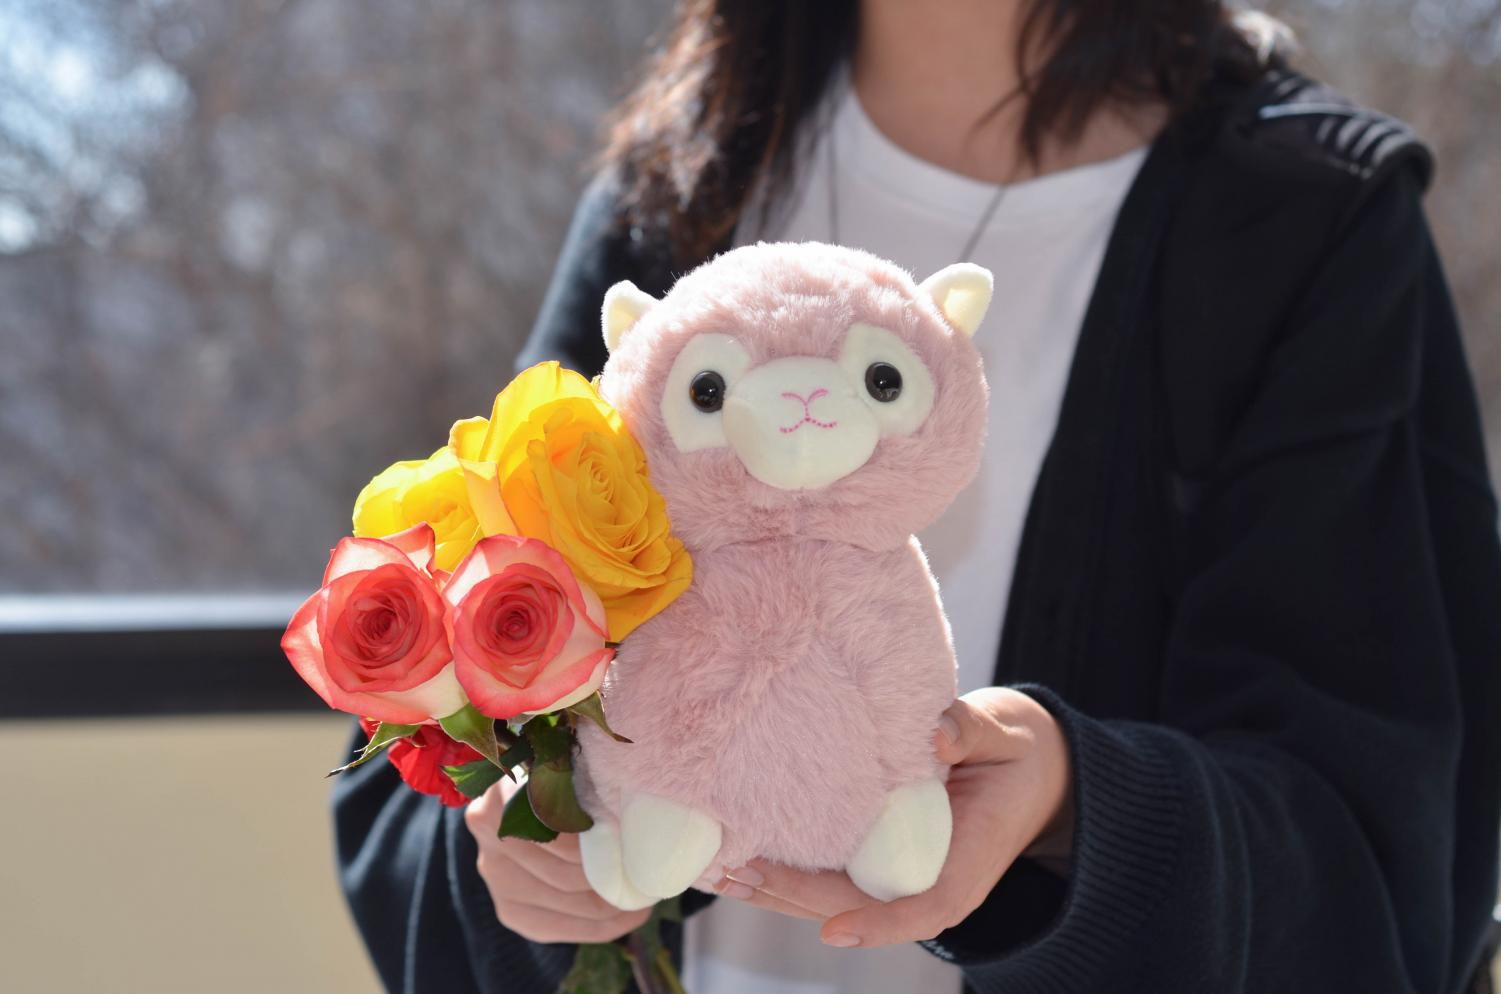 5.+Senior+Sophia+Li+holds+her+Valentine%E2%80%99s+Day+gifts.+Li+received+three+roses+and+a+stuffed+animal%0Afrom+her+friends.